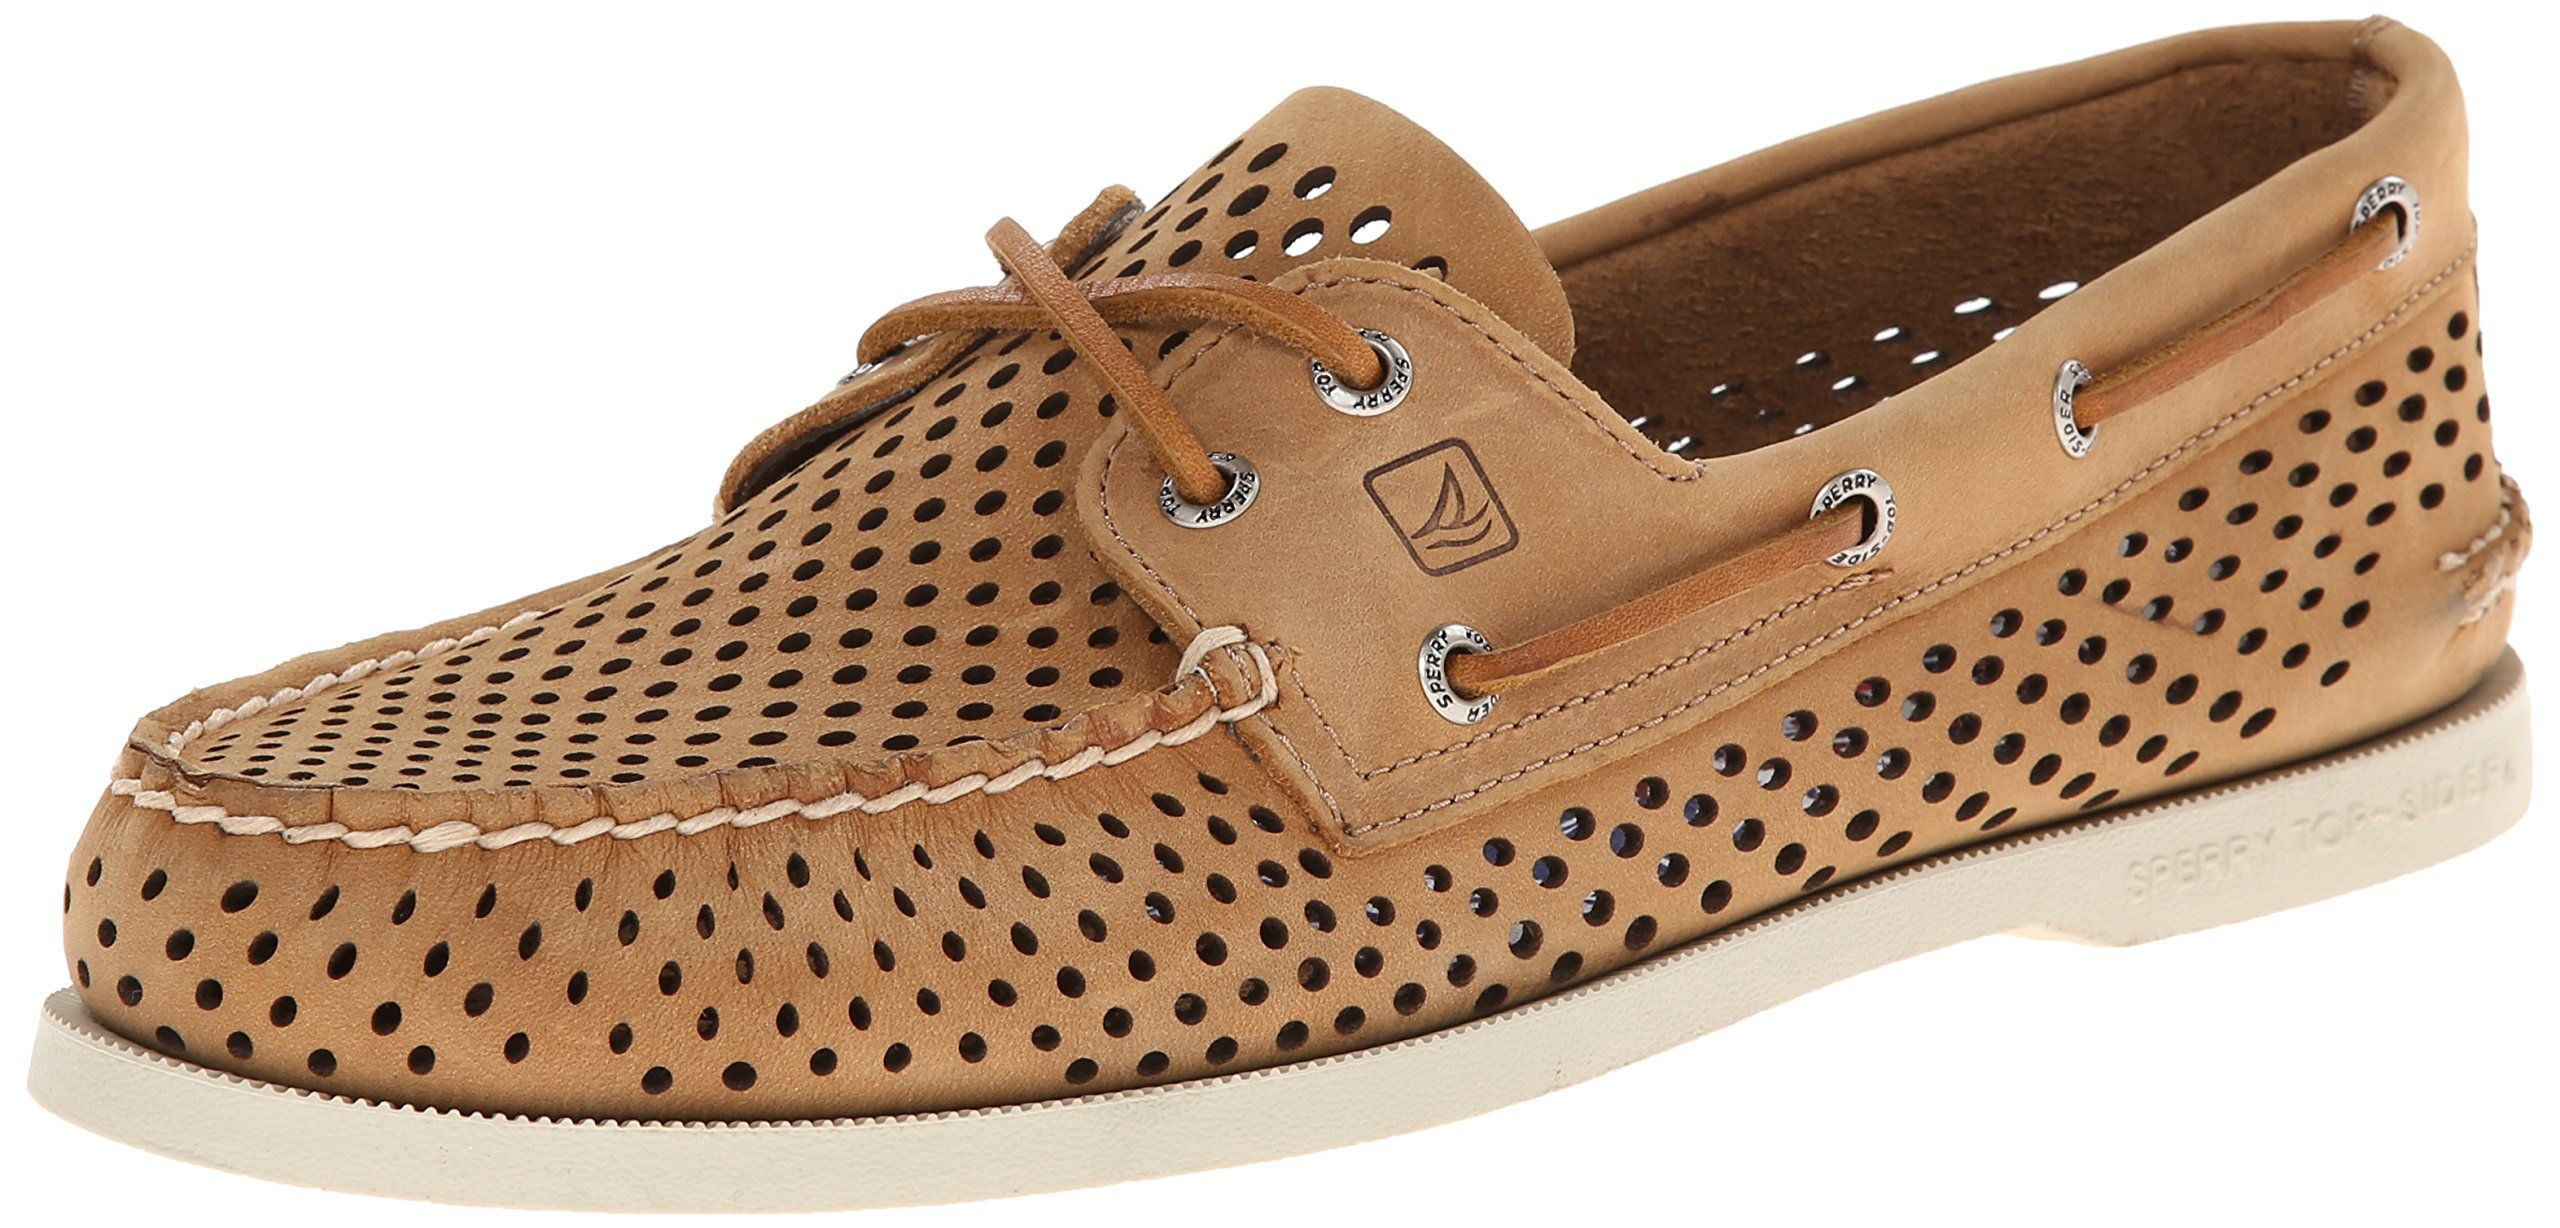 6777a48e82225 Amazon.com: Sperry Top-Sider Men's Authentic Original Laser Perf ...